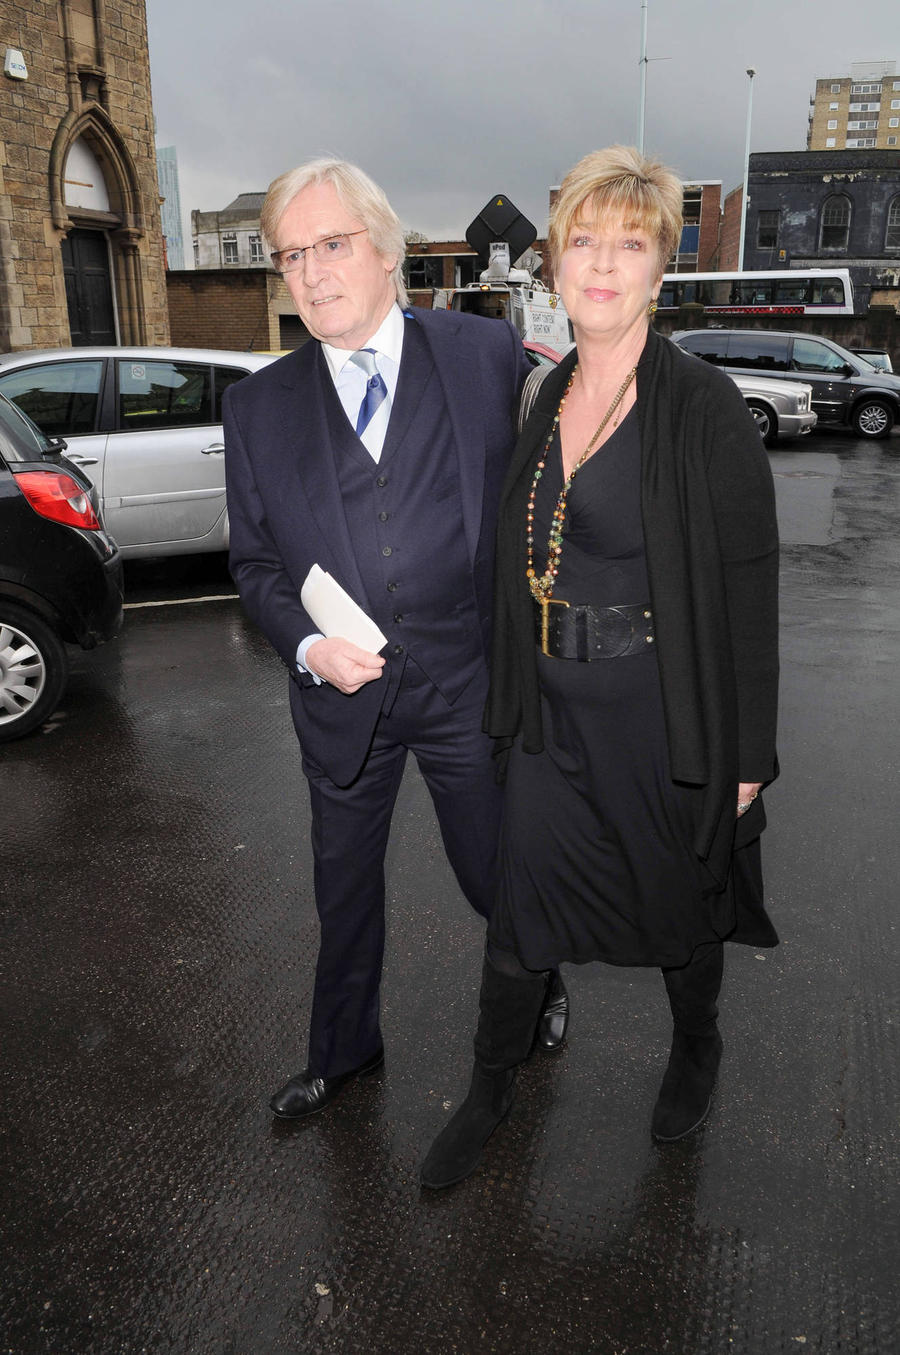 William Roache: 'Anne Kirkbride Was A Depressed Alcoholic'